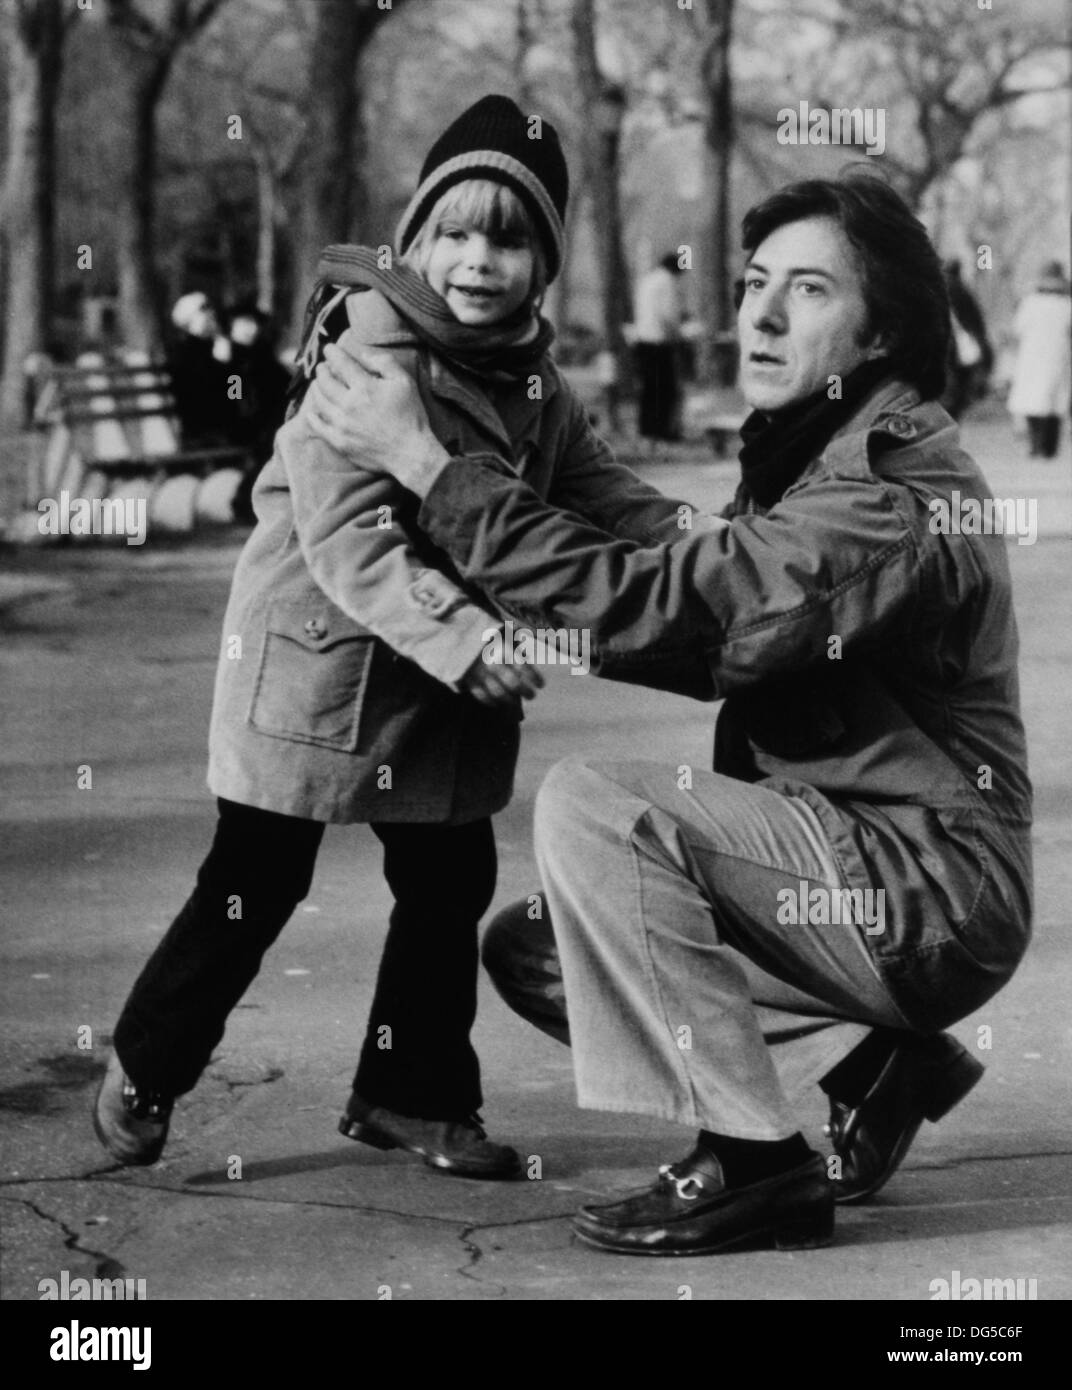 Dustin Hoffman and Justin Henry, on-set of the Film, 'Kramer vs. Kramer', Columbia Pictures, 1979 - Stock Image